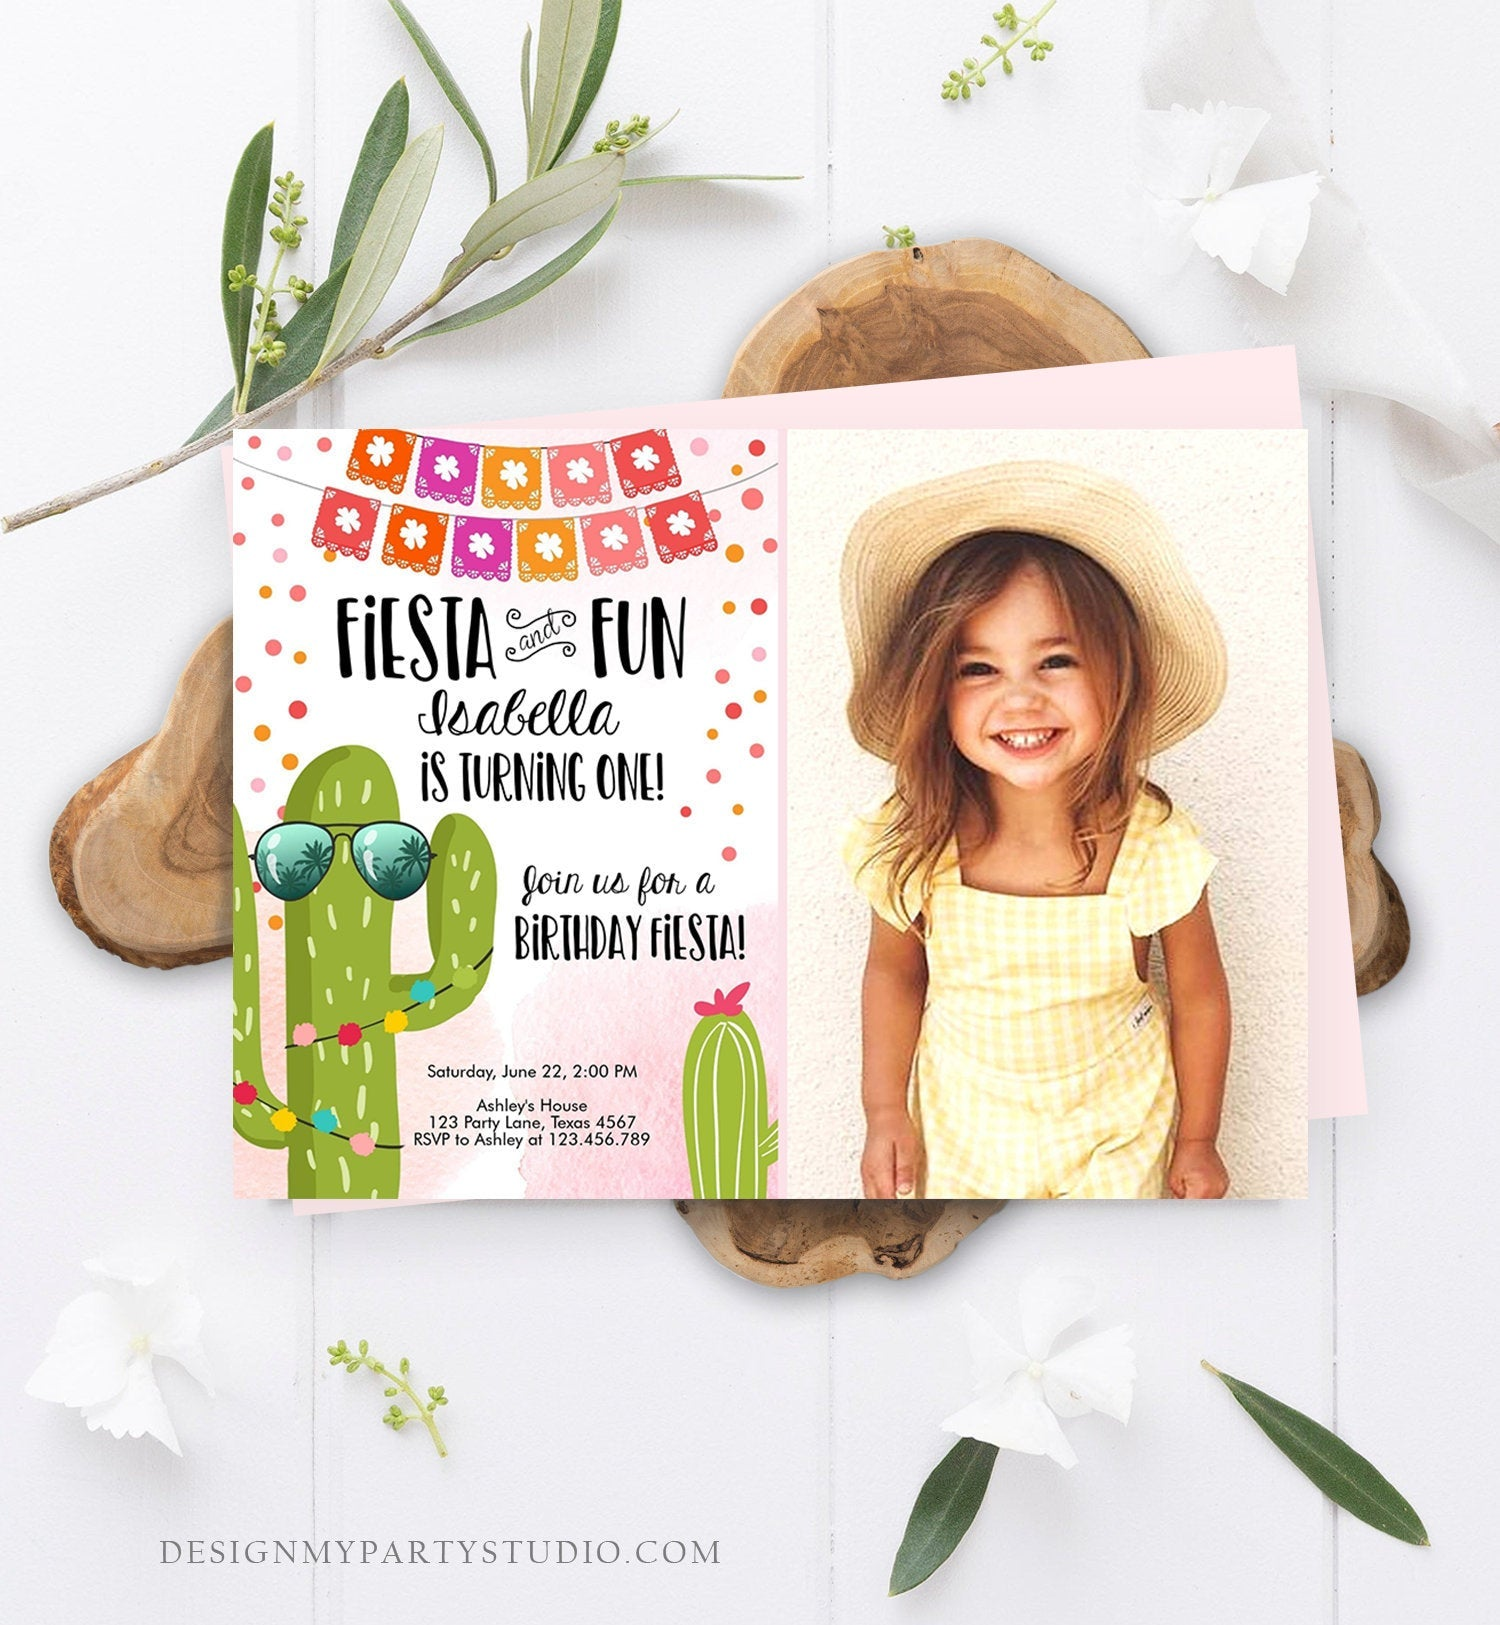 Editable Fiesta and Fun Birthday Invitation First Fiesta Cactus Pink Girl ANY AGE Instant Download Printable Invitation Template Corjl 0135